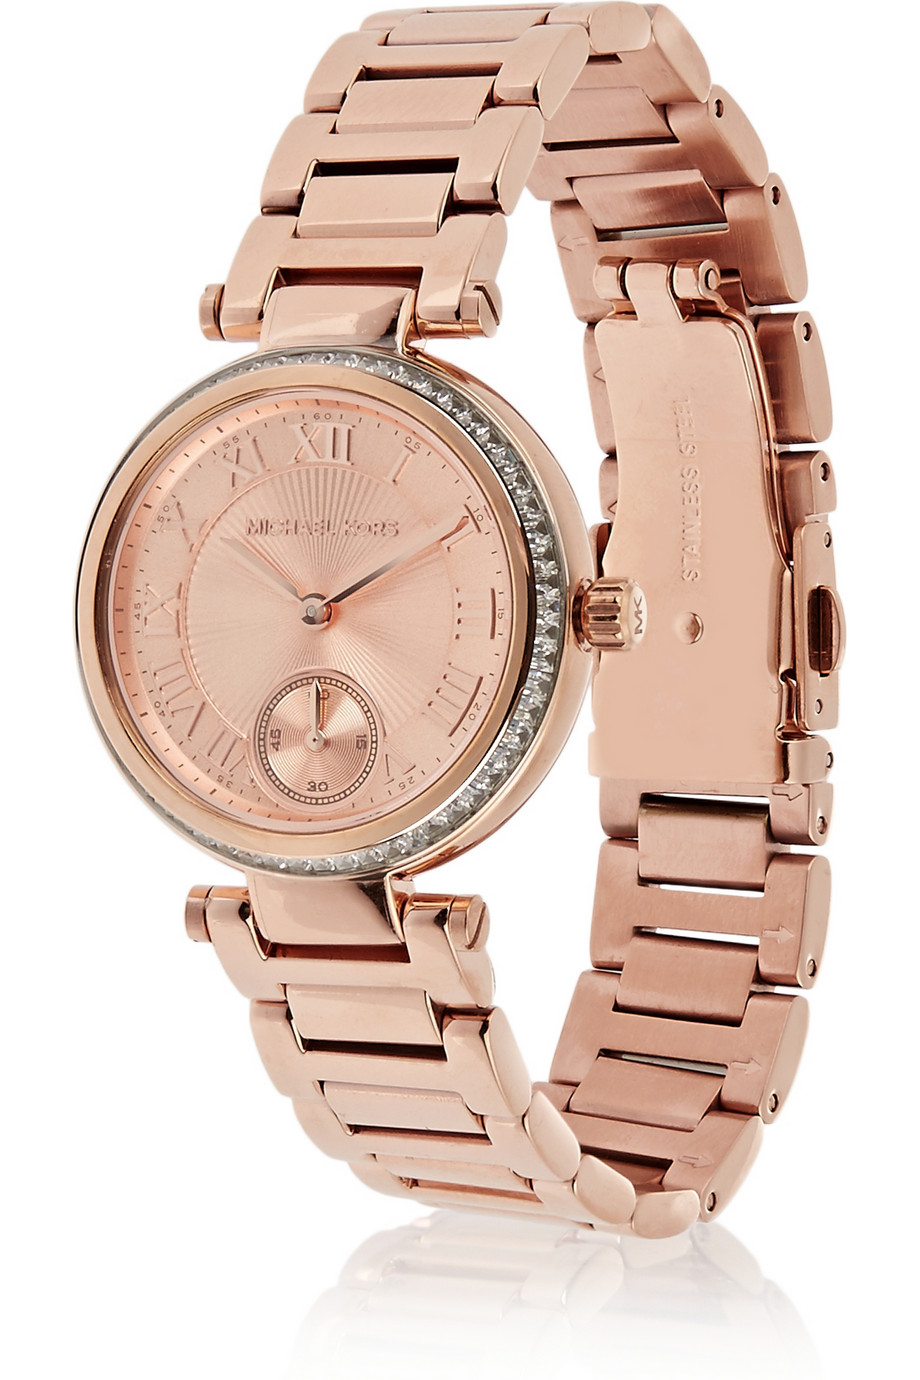 lyst michael kors skylar rose gold tone watch in pink. Black Bedroom Furniture Sets. Home Design Ideas